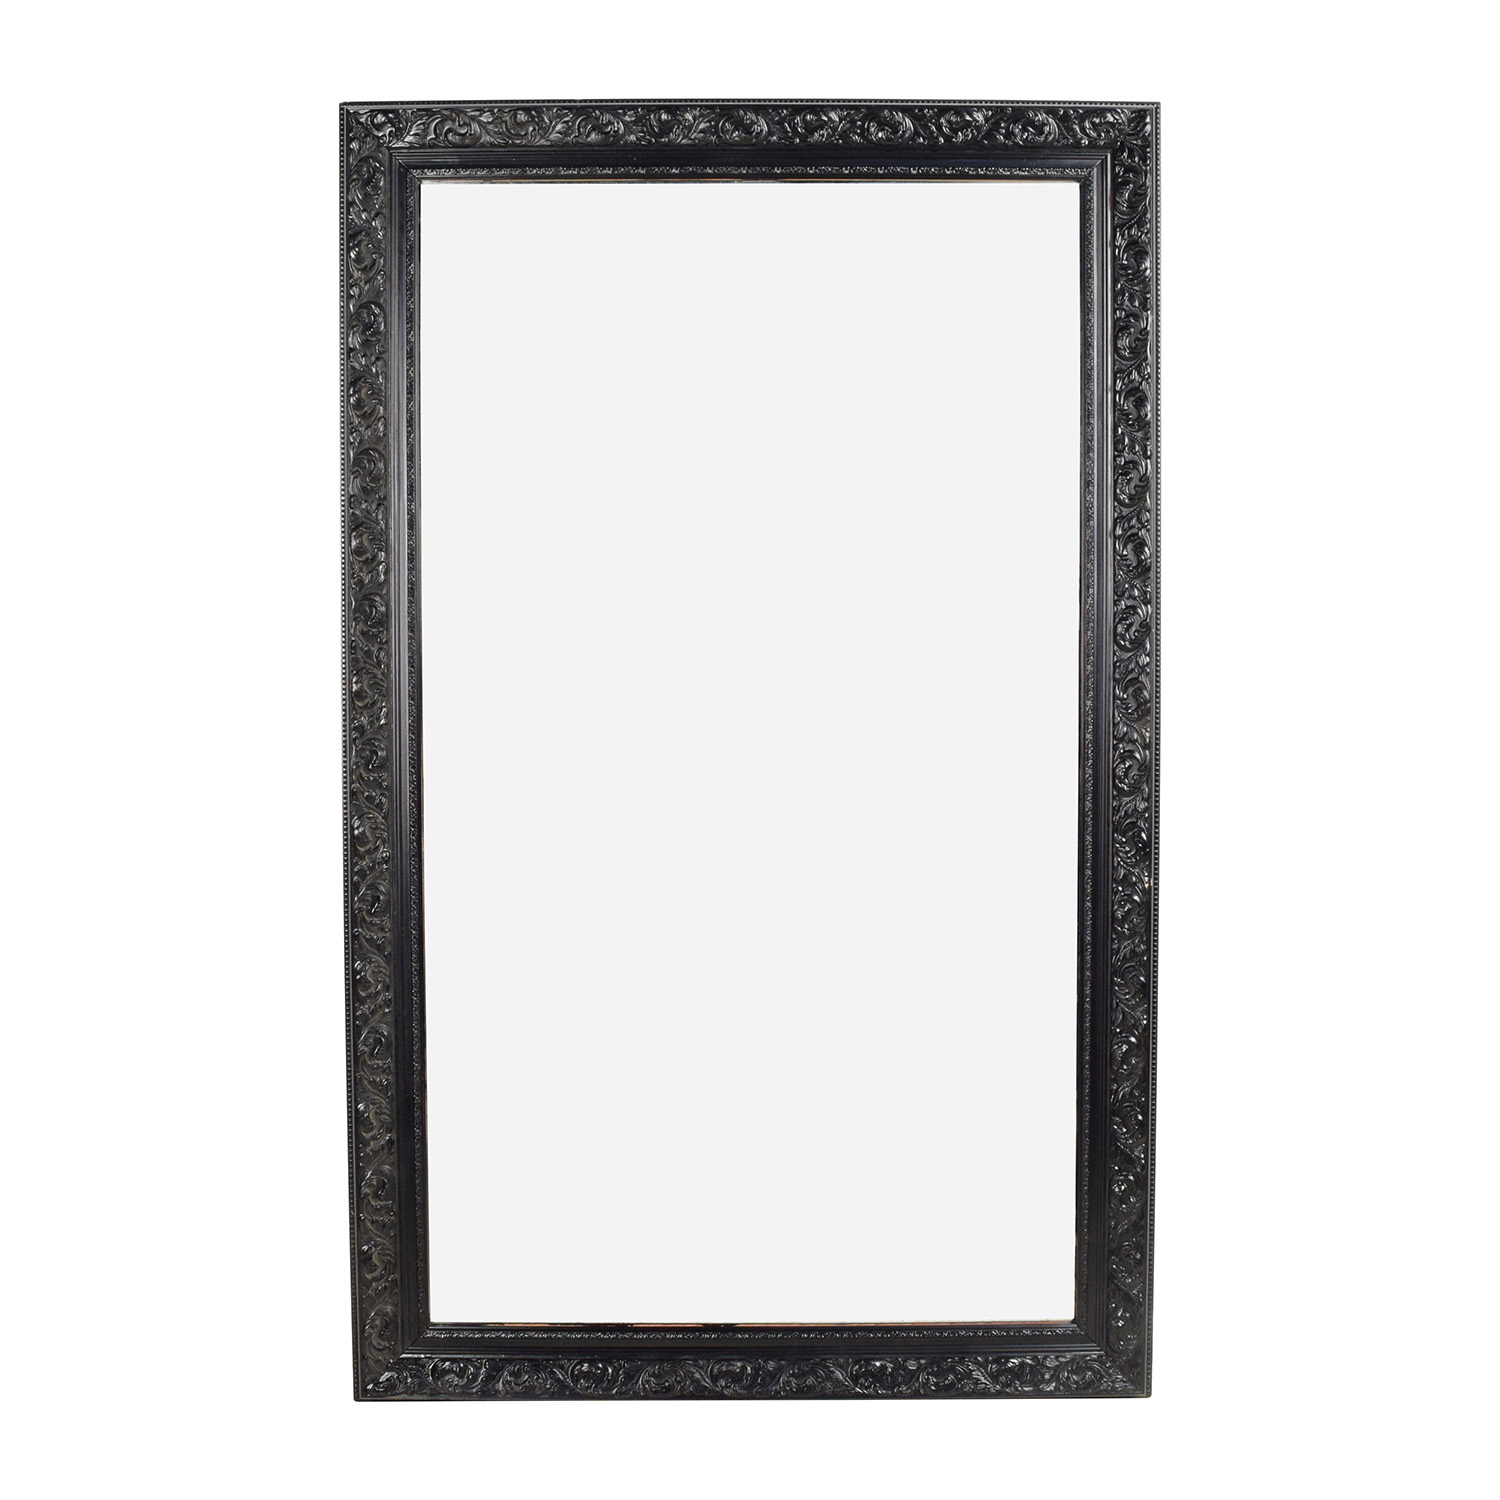 Antique Antique Ornate Frame Mirror black